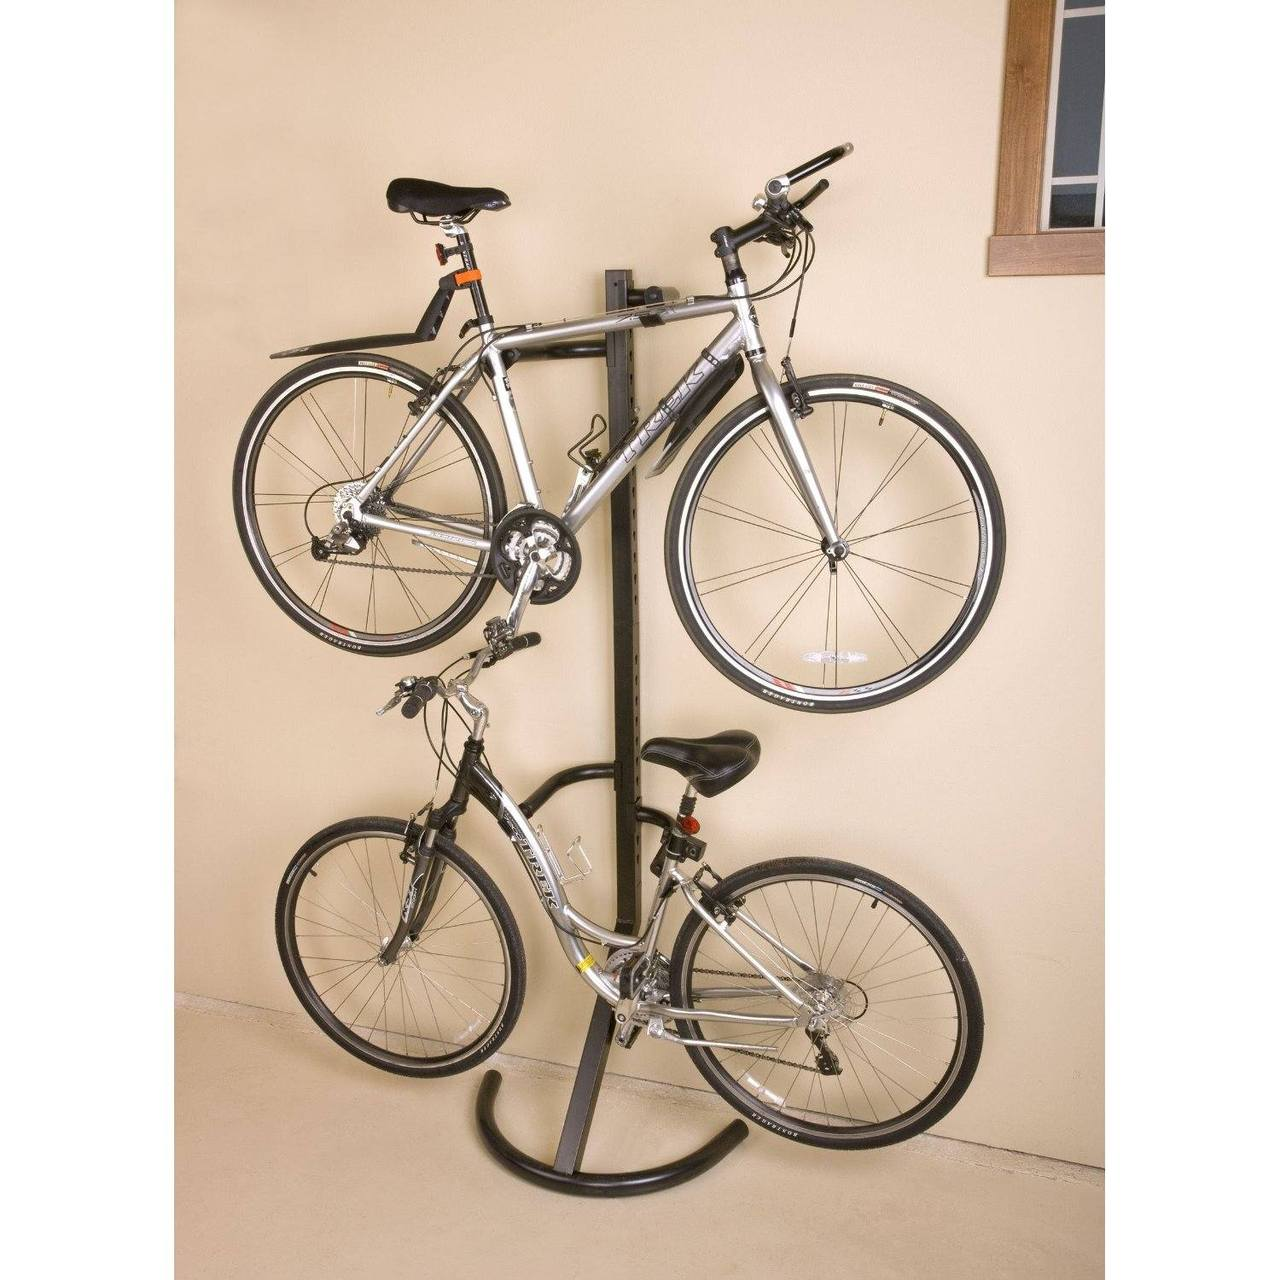 bicycles mount products carrier bike united side curve for surf racks rack states accessories surfboard